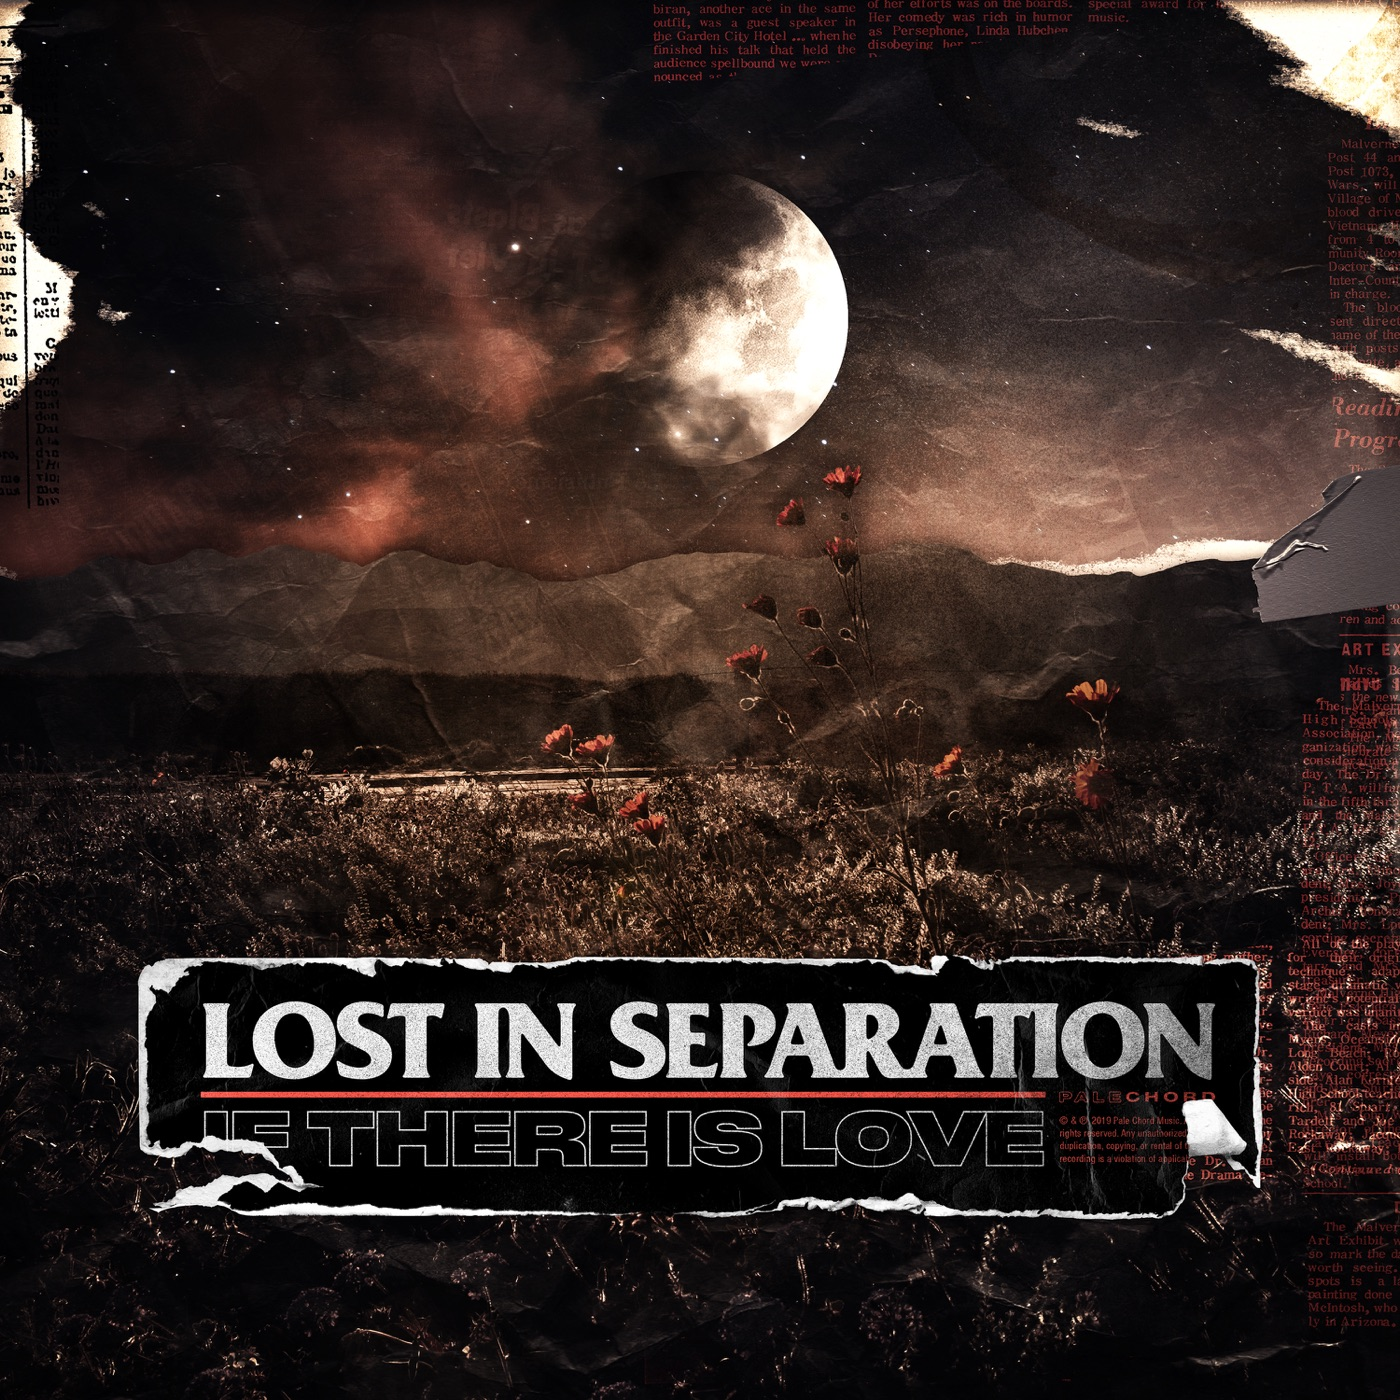 Lost in Separation - If There is Love [single] (2019)